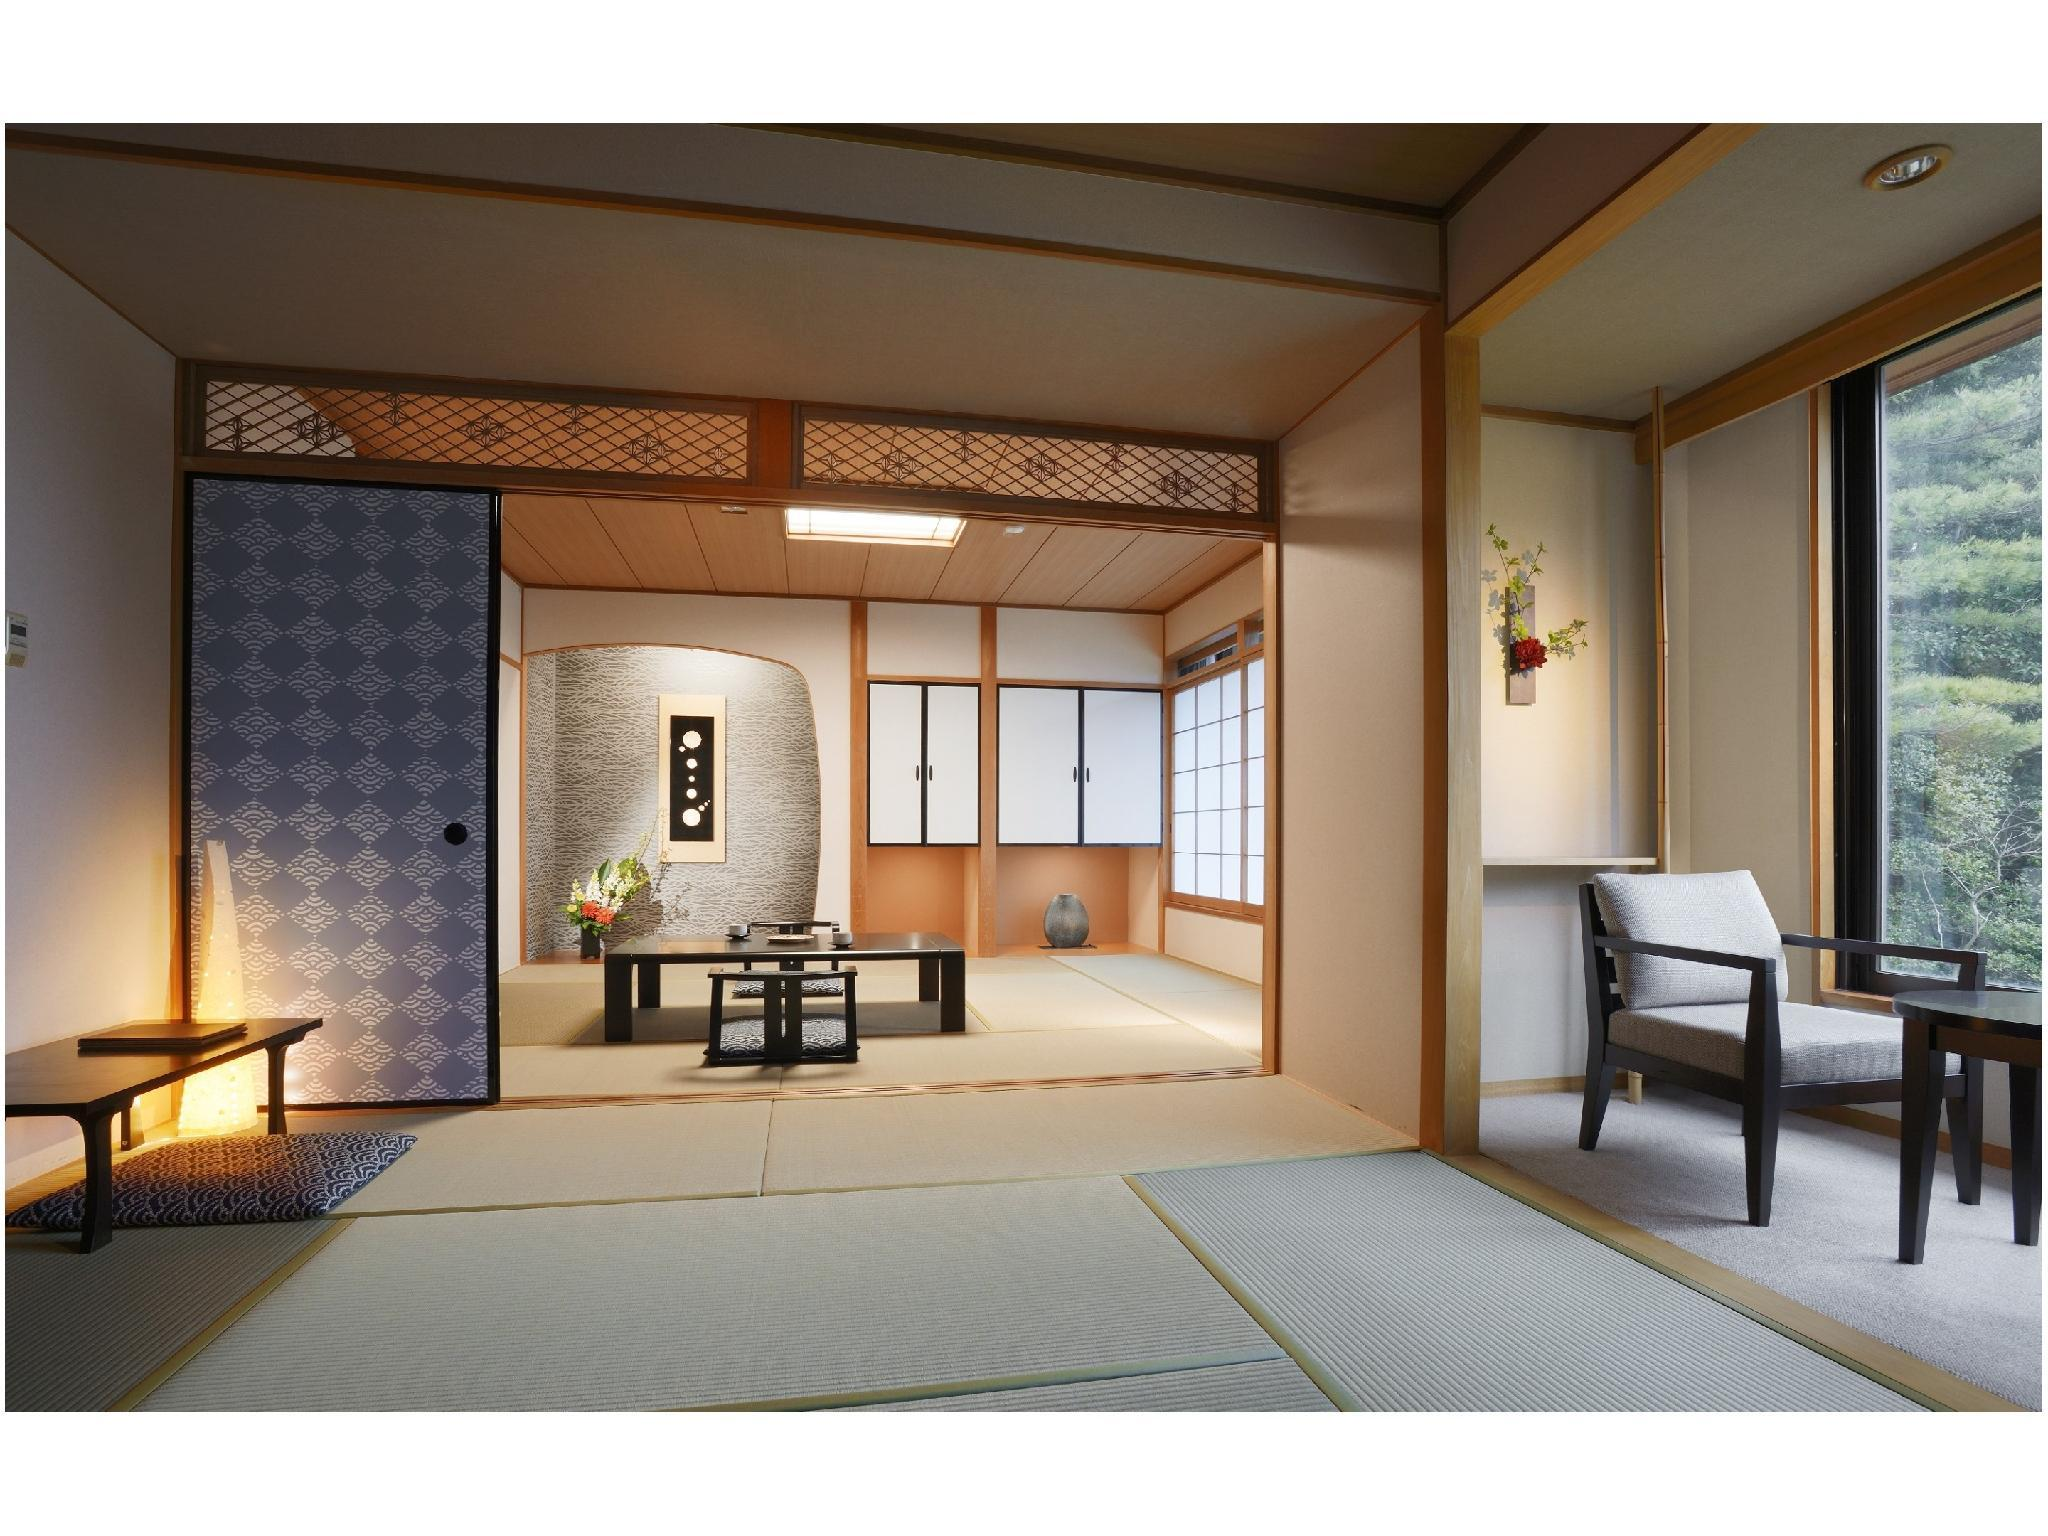 The KATAGAMI|84.1平米+次の間 (The Katagami Japanese-style Room)